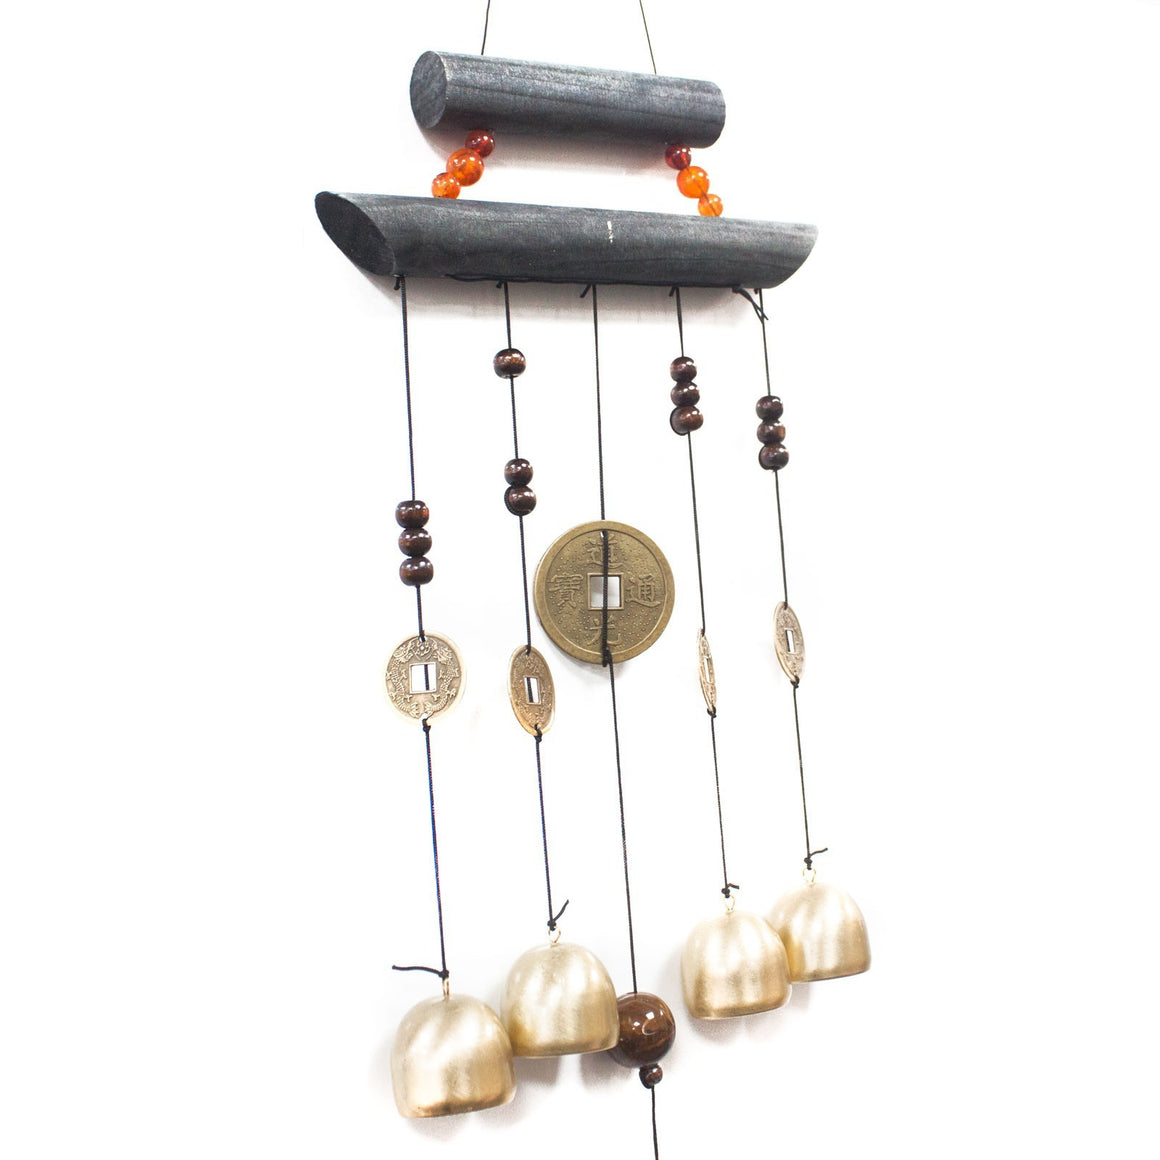 Feng Shui Chimes - Happy Home 4 Bells & Coin